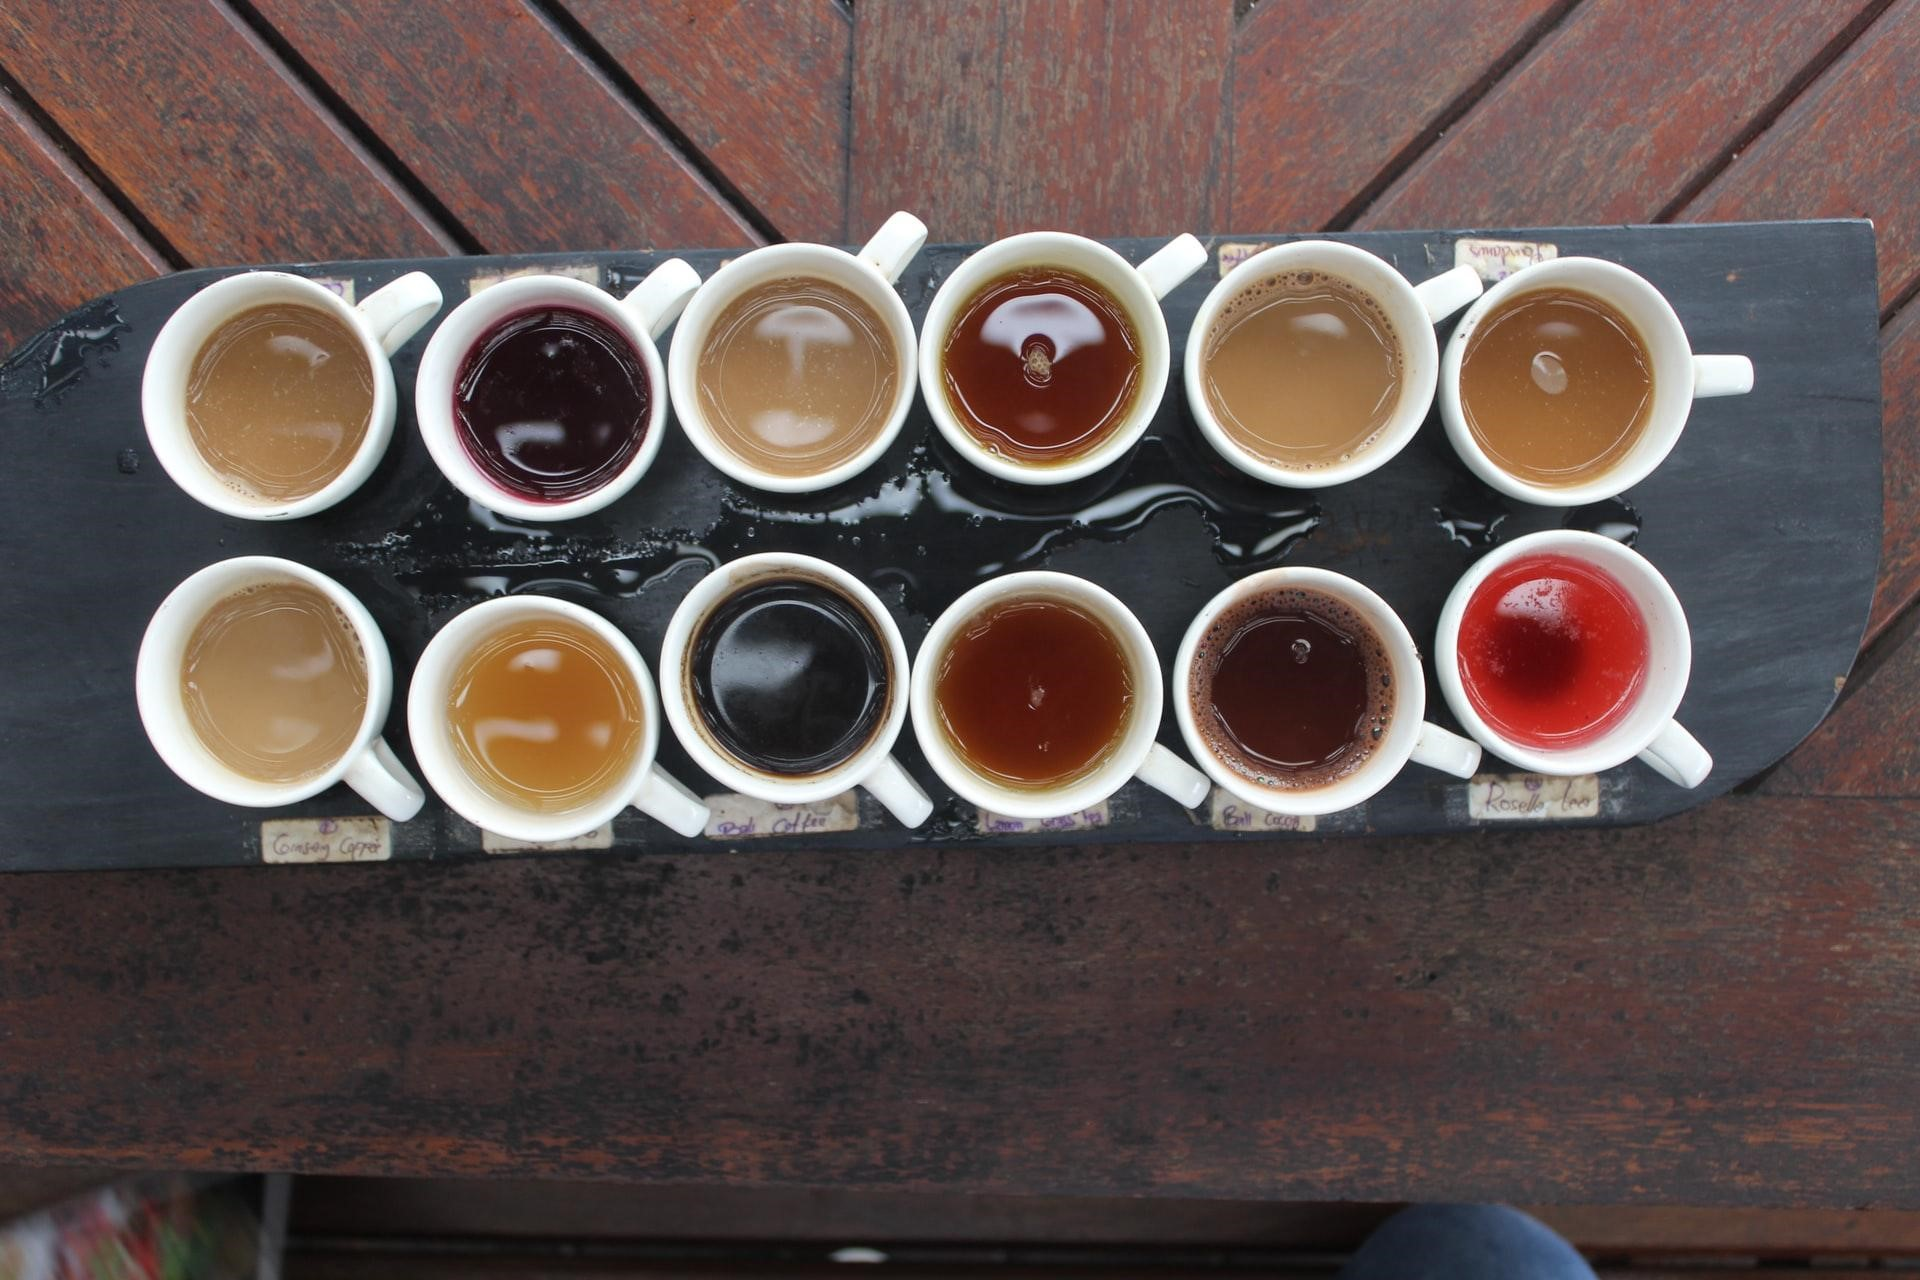 Brewing Methods to Make Coffee and Tea